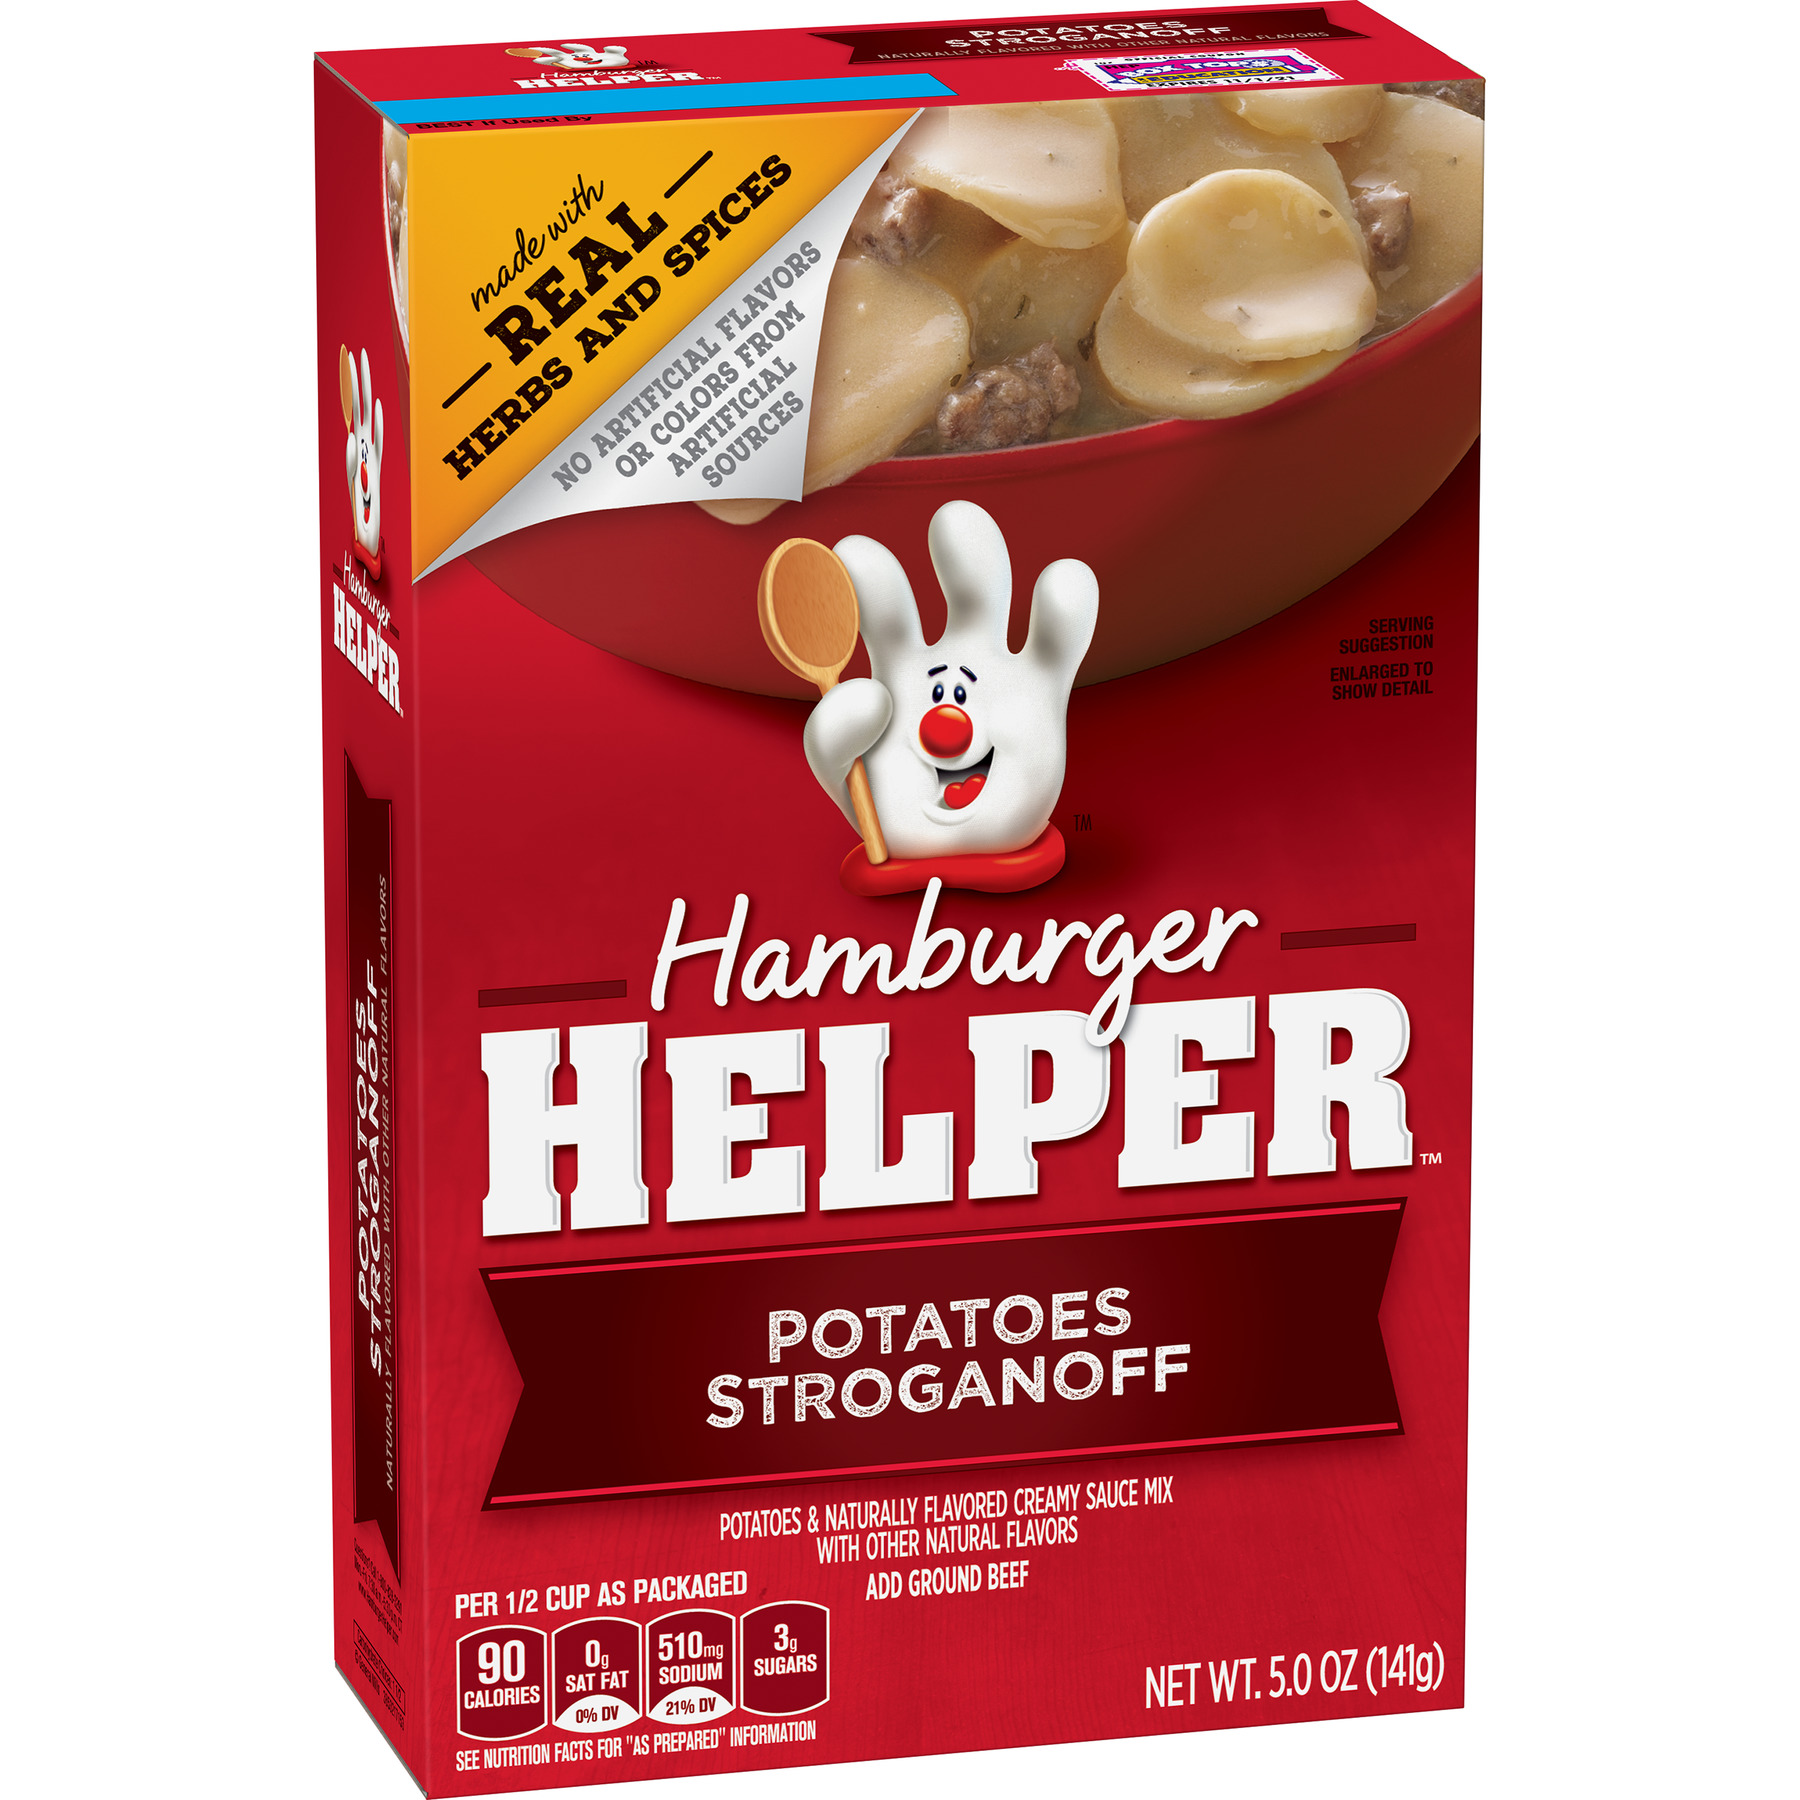 Hamburger Helper Potatoes Stroganoff Hamburger Helper 5 Oz